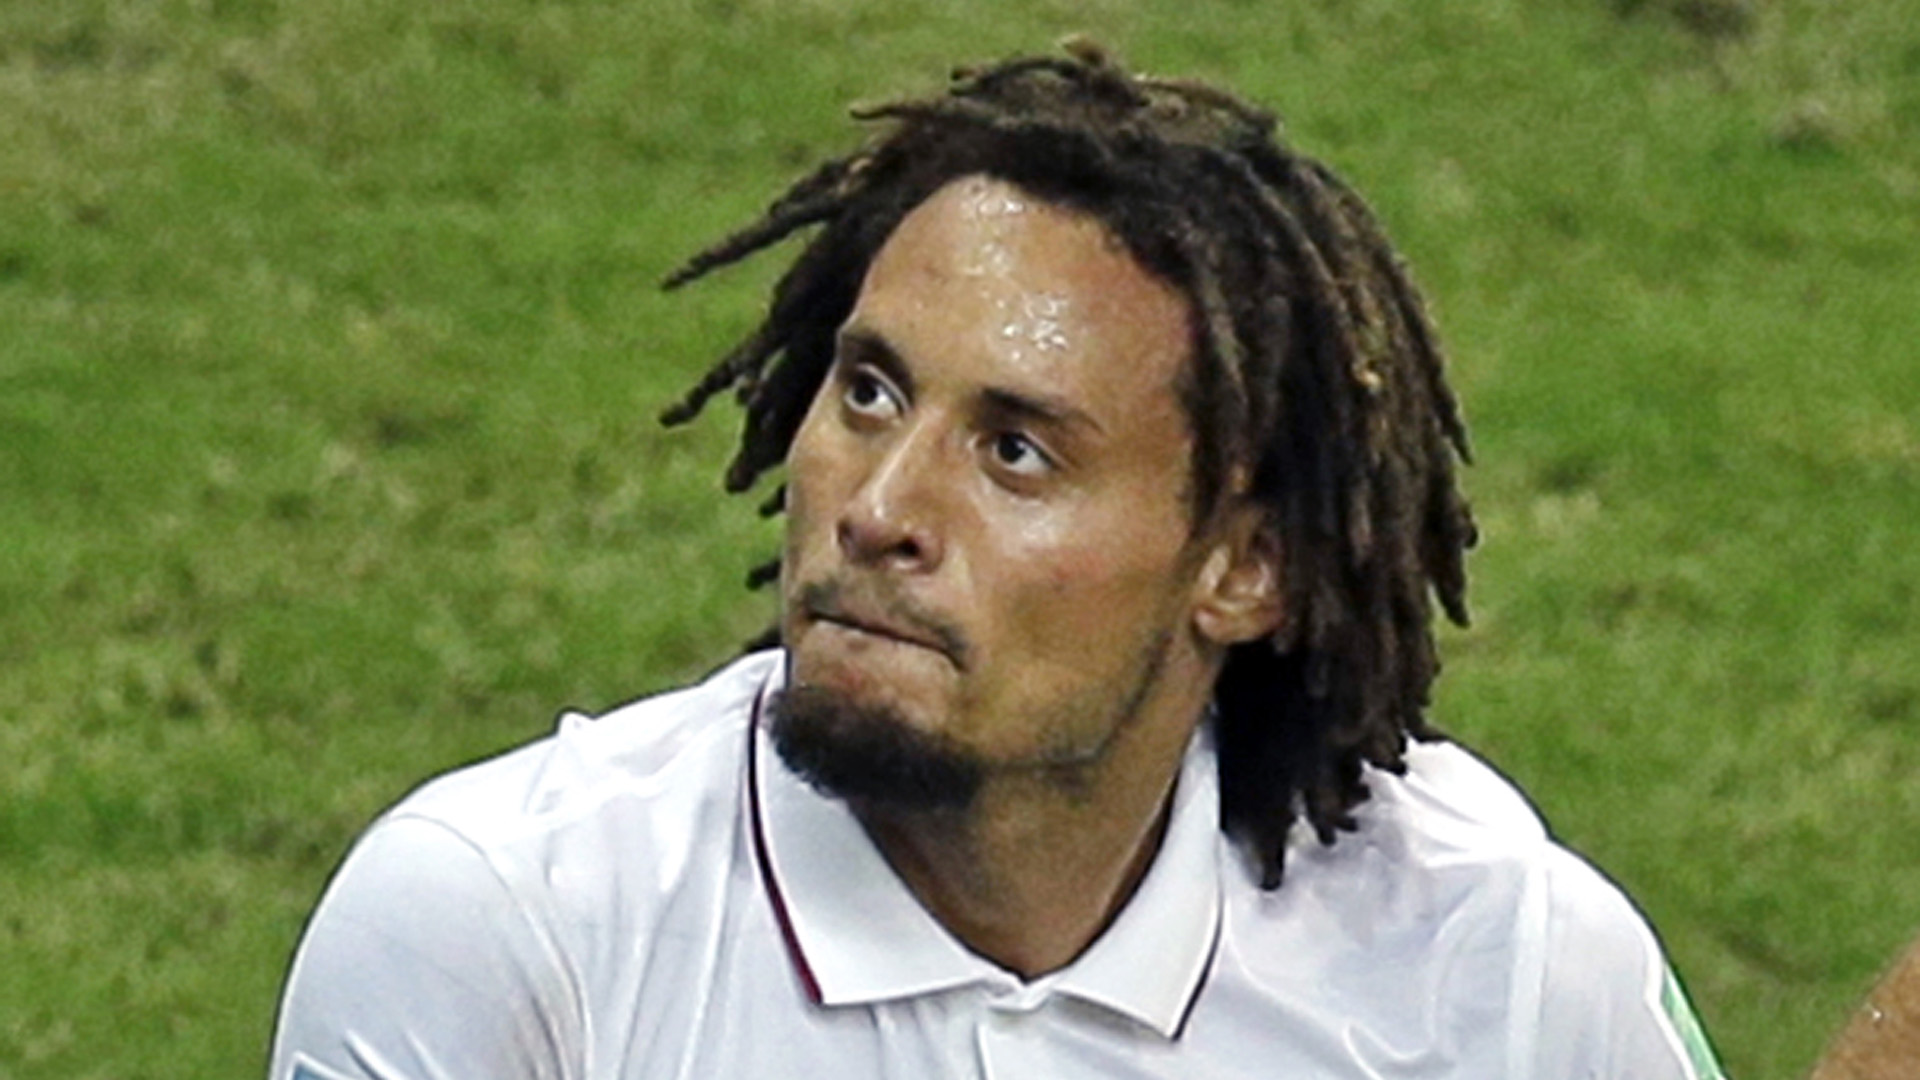 jermaine-jones-FTR-081914.jpg